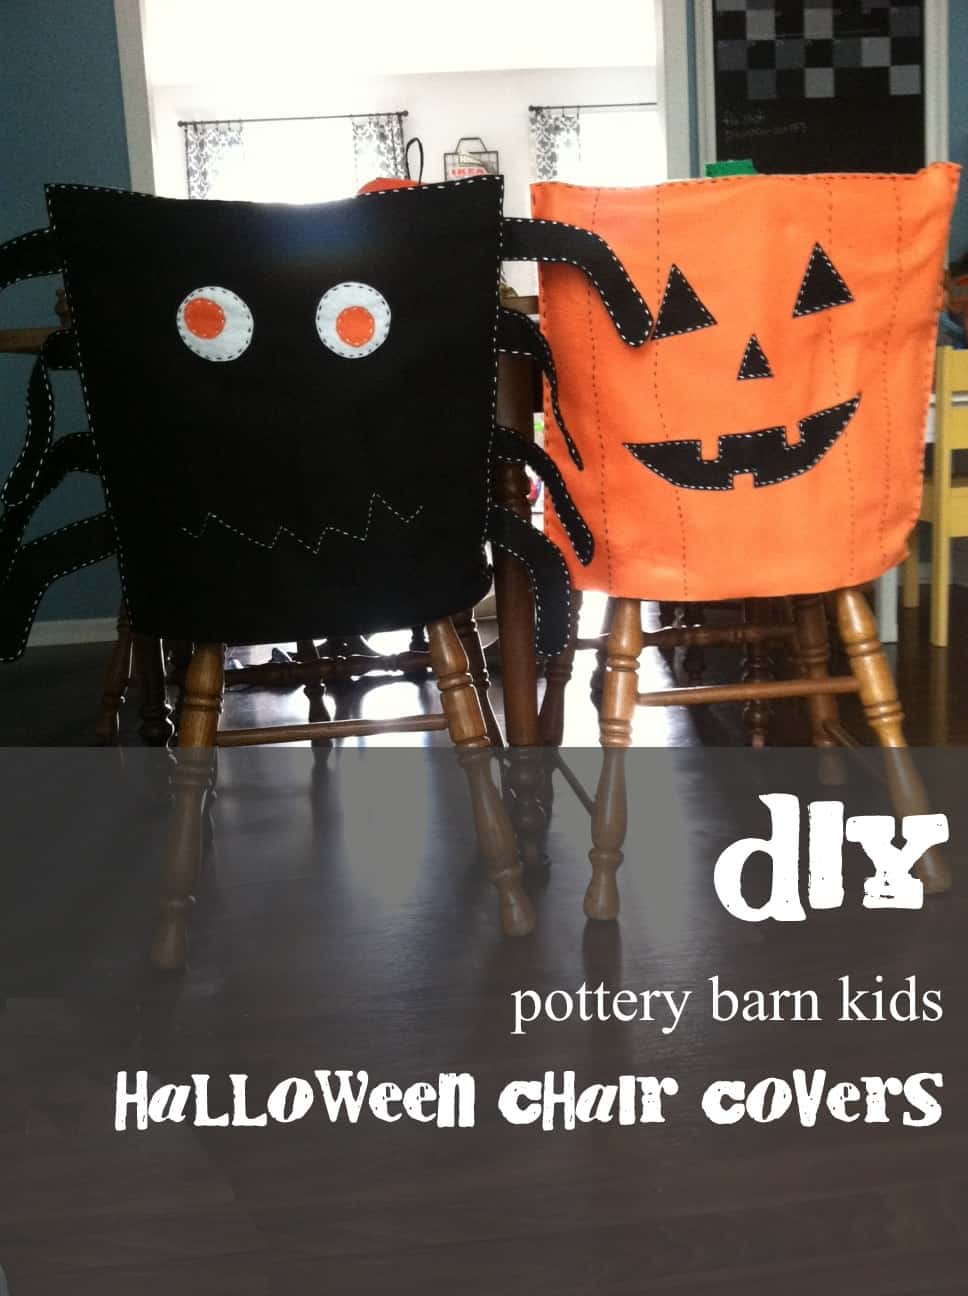 chair covers decorations nash fishing accessories diy pottery barn inspired halloween mary martha mama